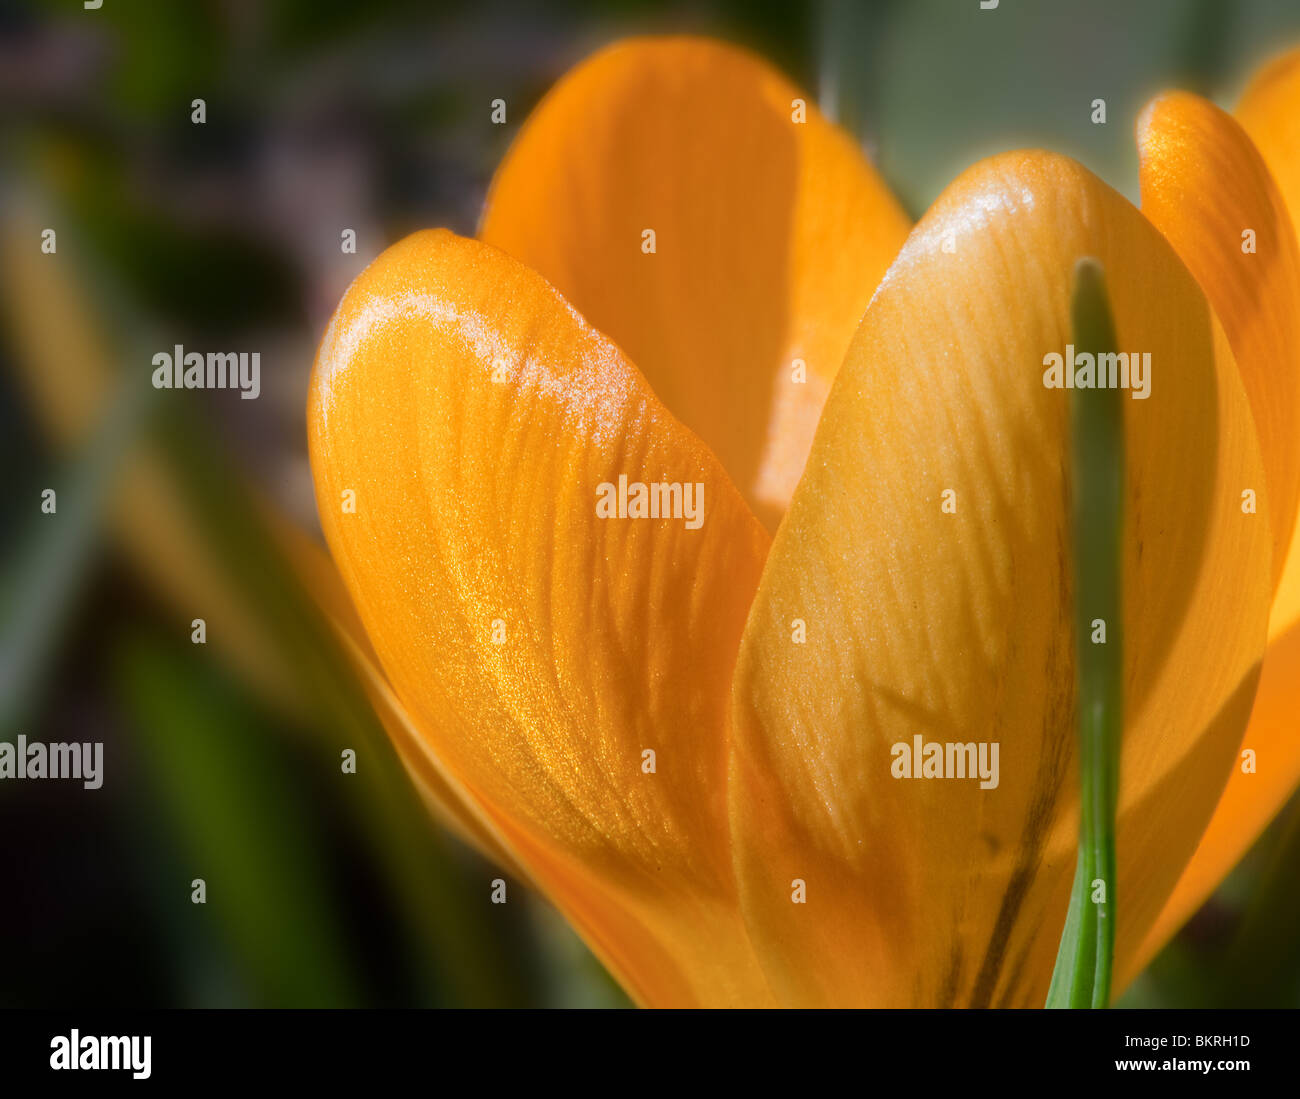 Close up of a yellow crocus flower with depth of focus control - Stock Image